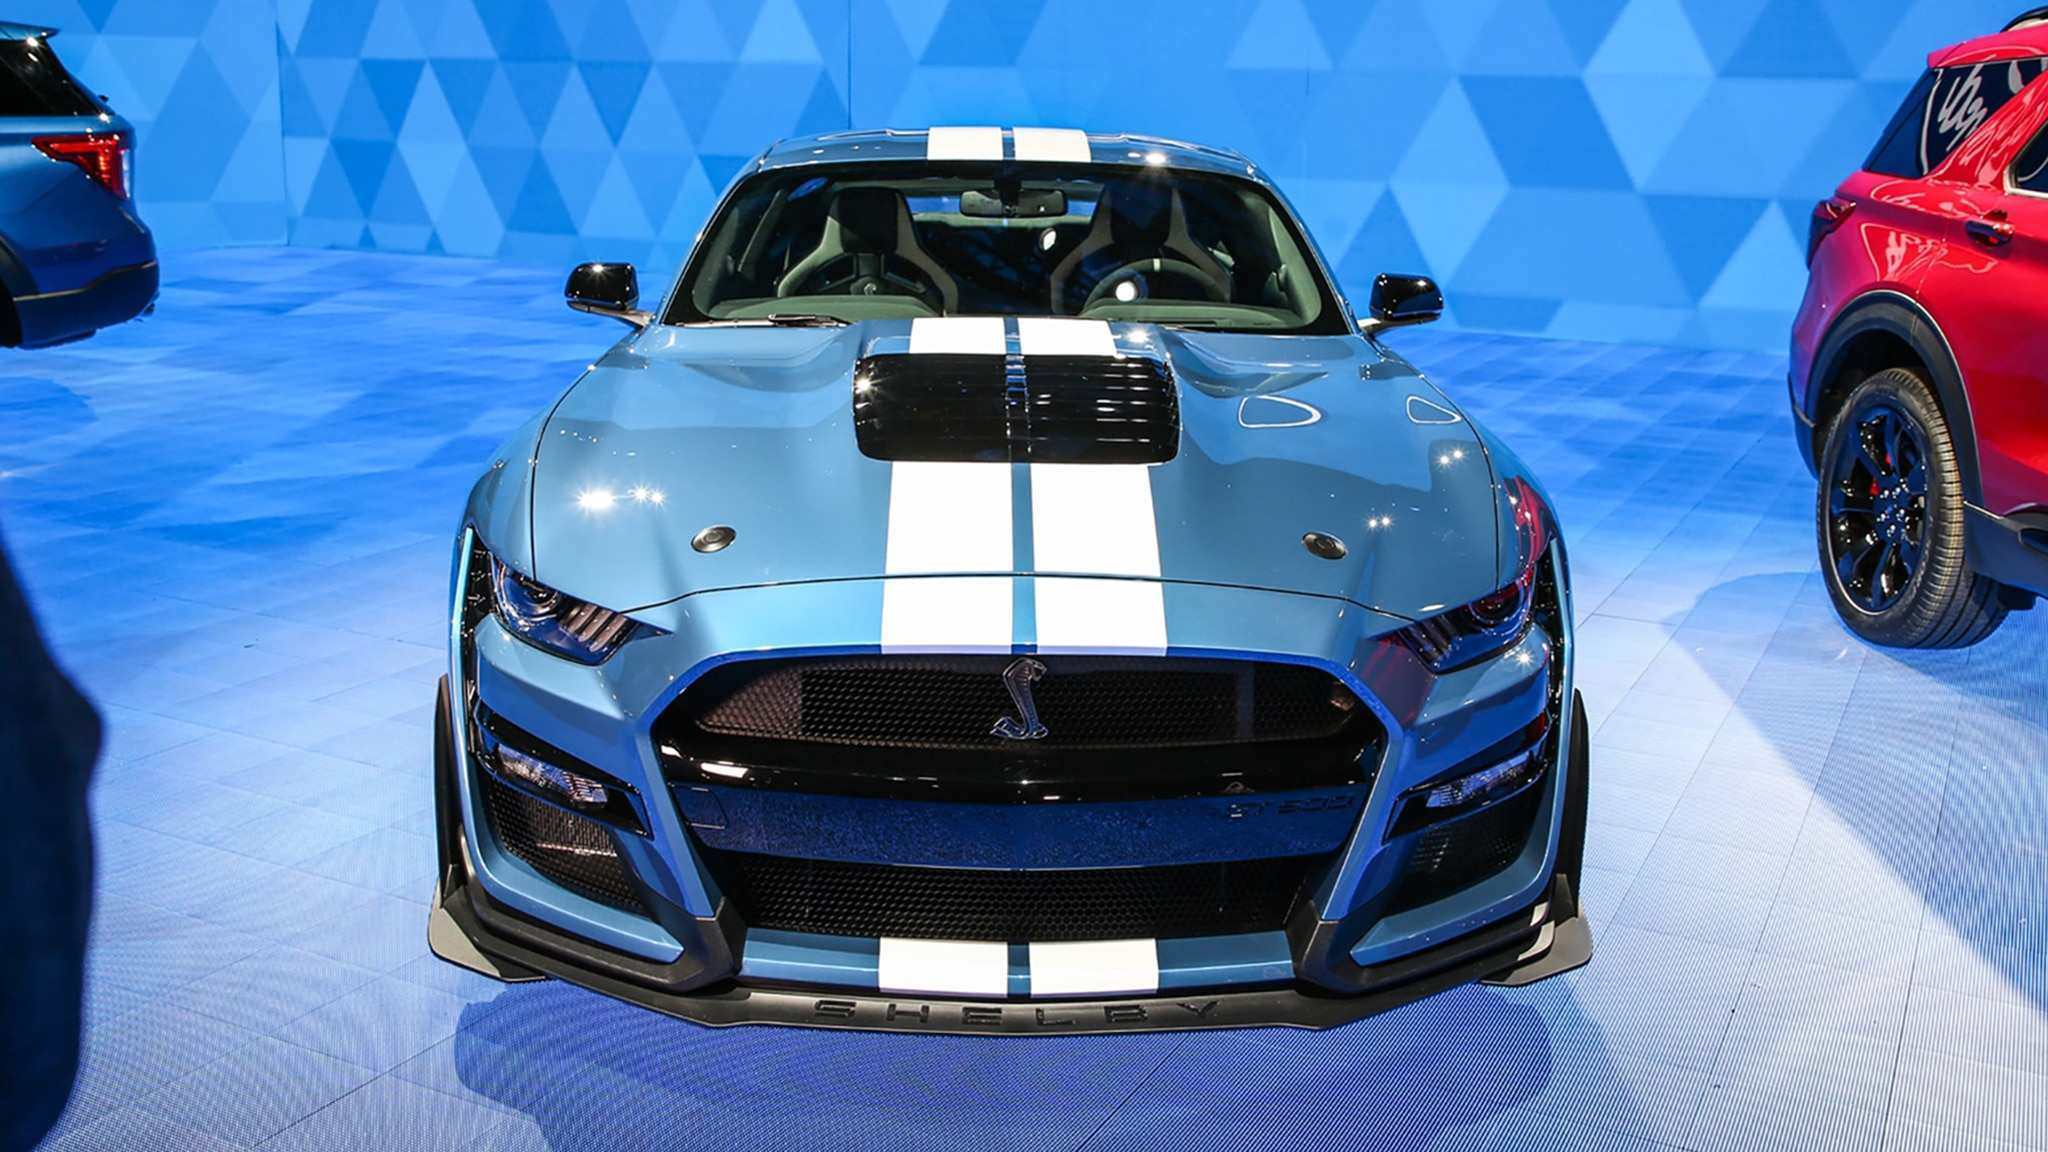 30 All New 2020 Ford Mustang Shelby Gt500 Wallpaper